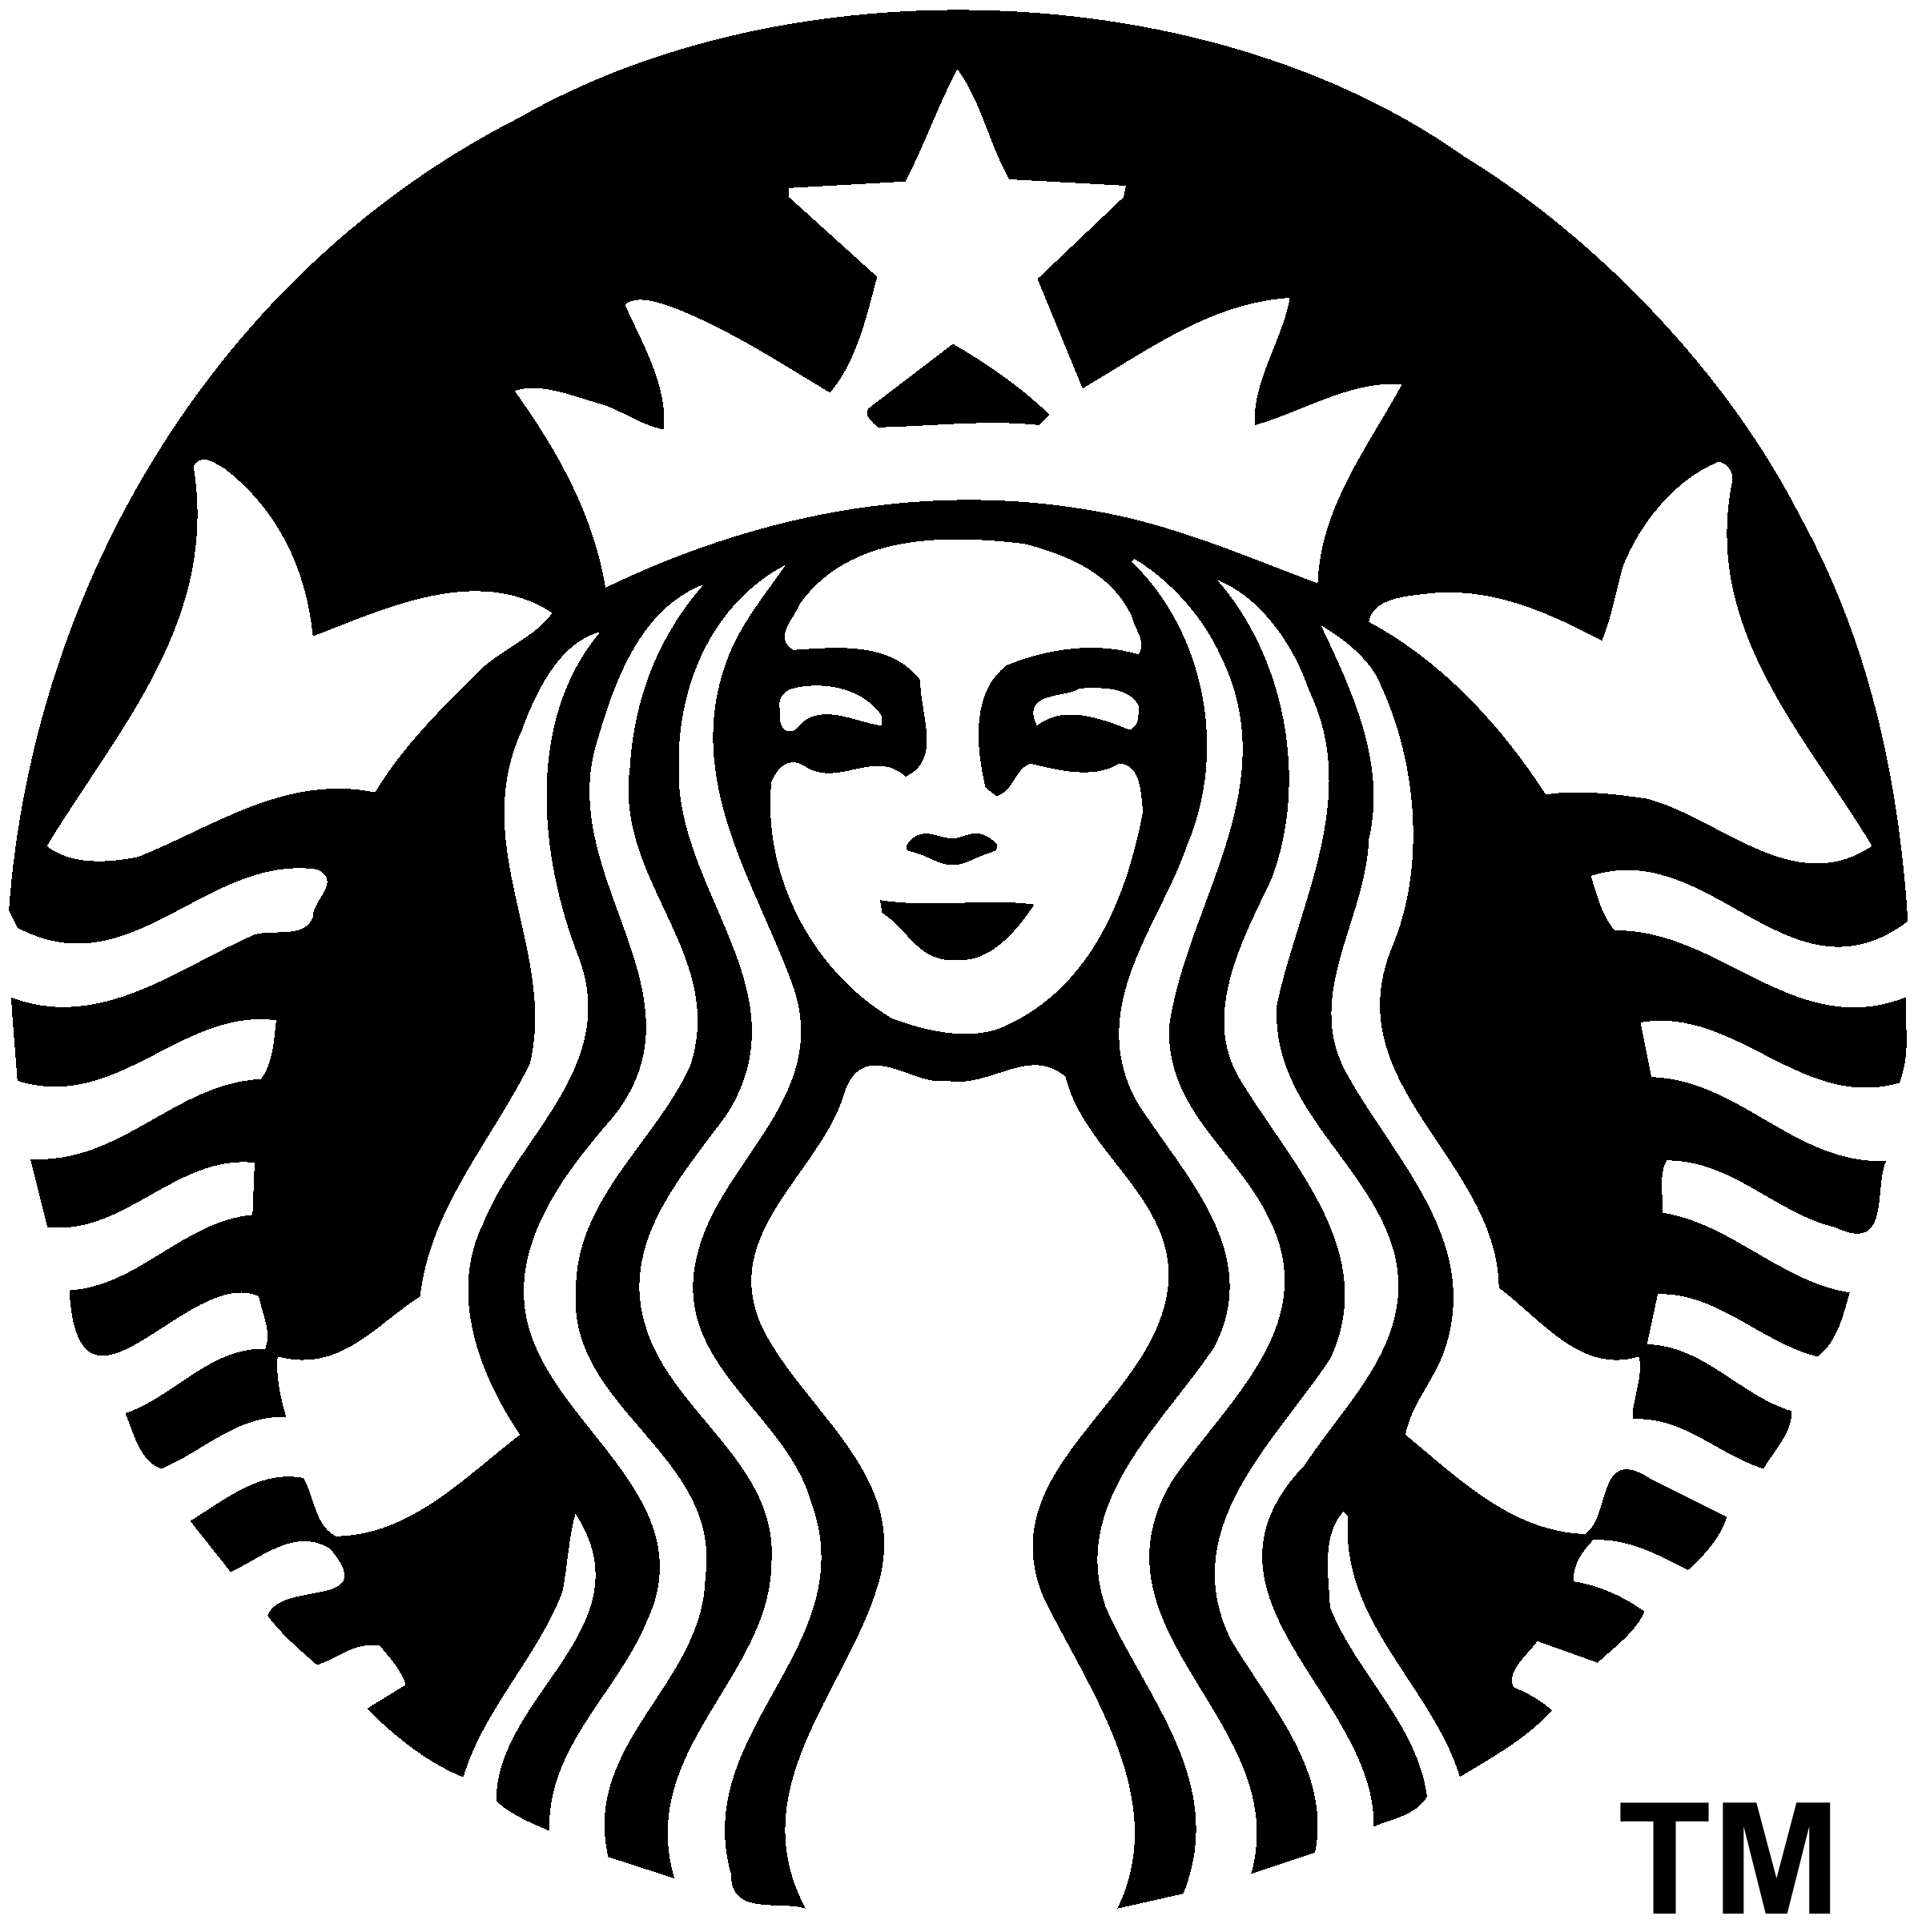 Download Starbucks Logo Black And White Starbucks New Logo 2011 Png Image With No Background Pngkey Com